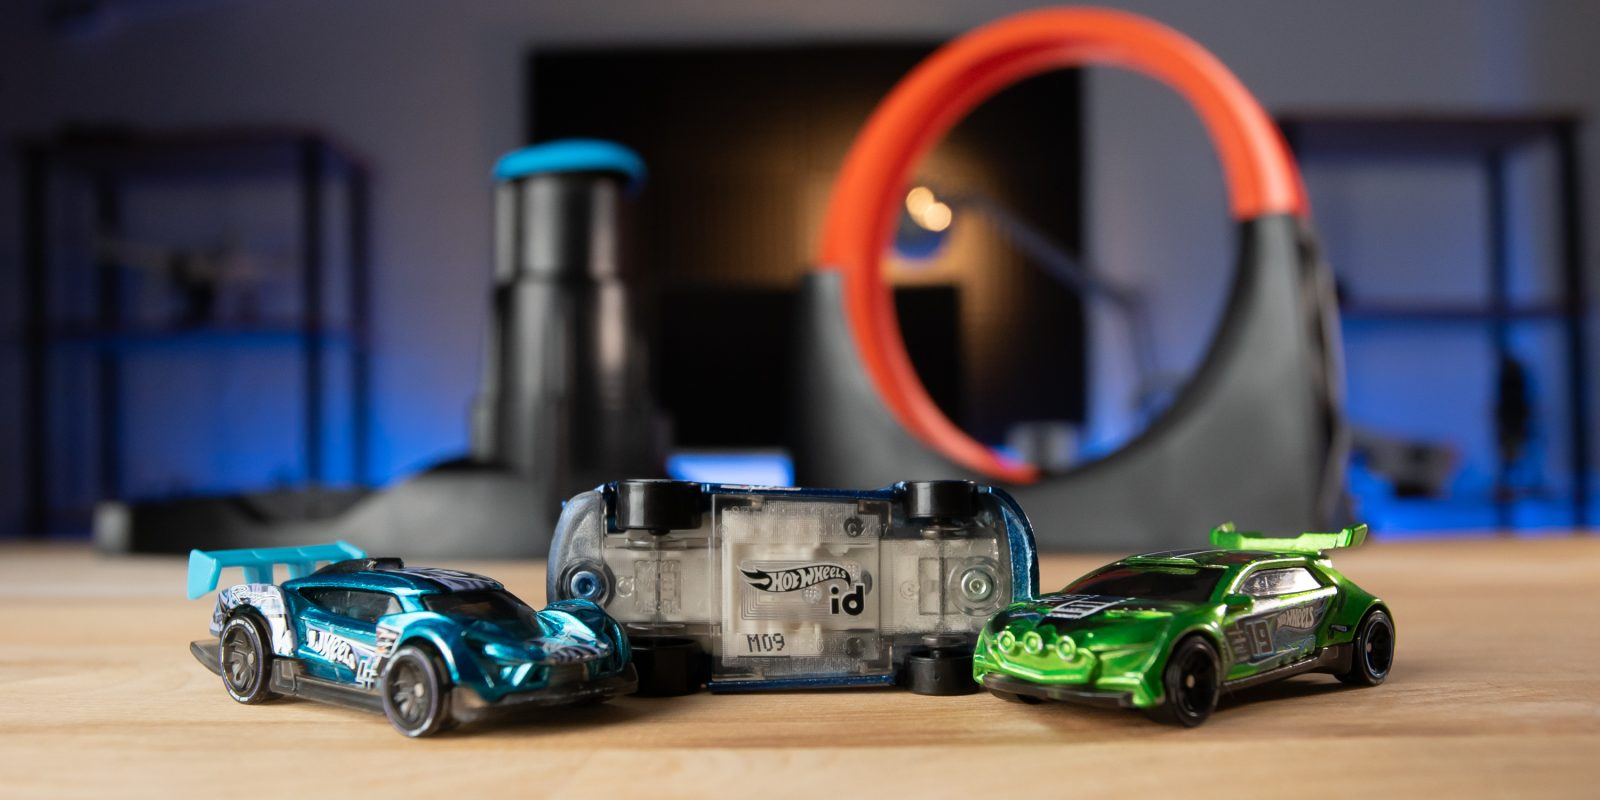 Hot Wheels id Review: Vintage favorite goes modern with iPhone integration [Video]